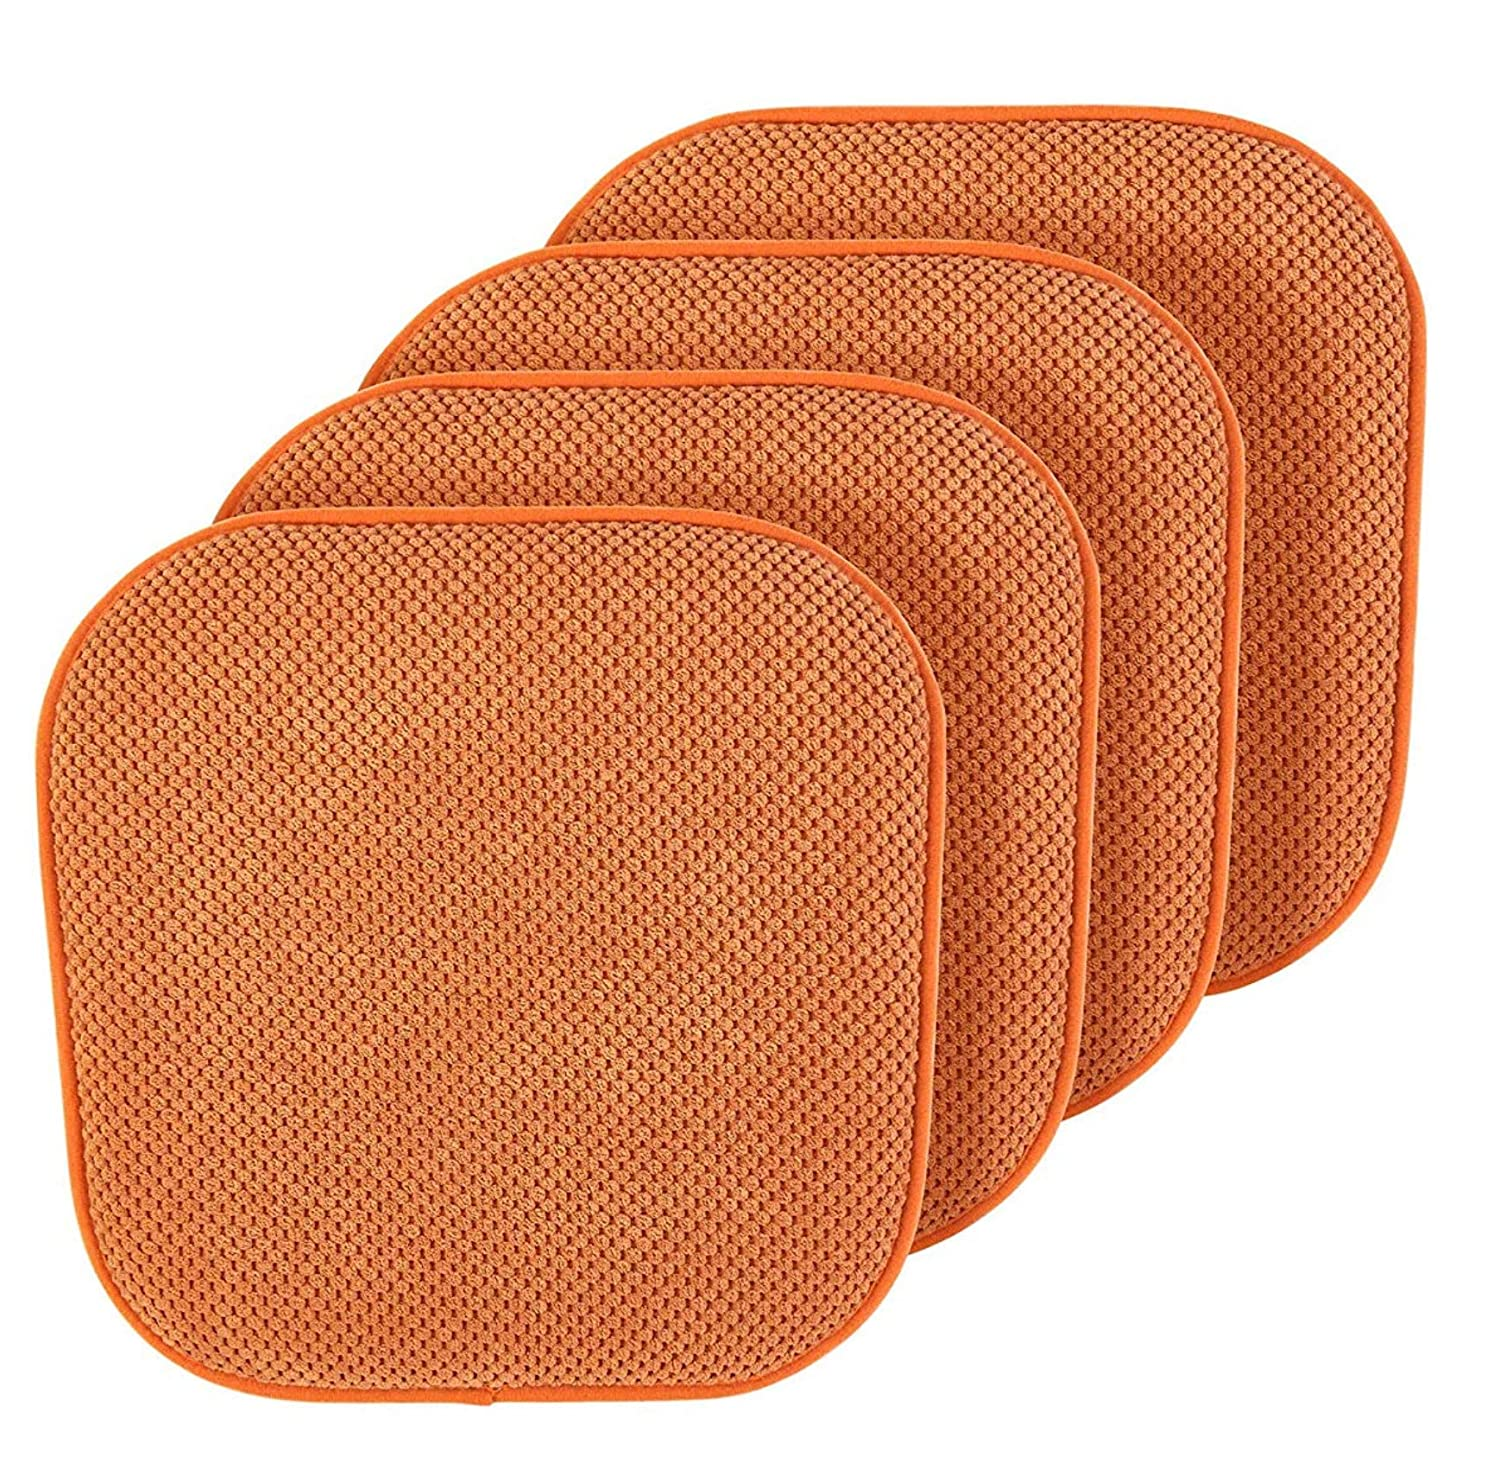 GoodGram Premium Soft Surface Ultra Comfort Non-Slip Kitchen & Dining Curved Memory Foam Chair Cushions - Assorted Colors (Spice, 4 Pack)